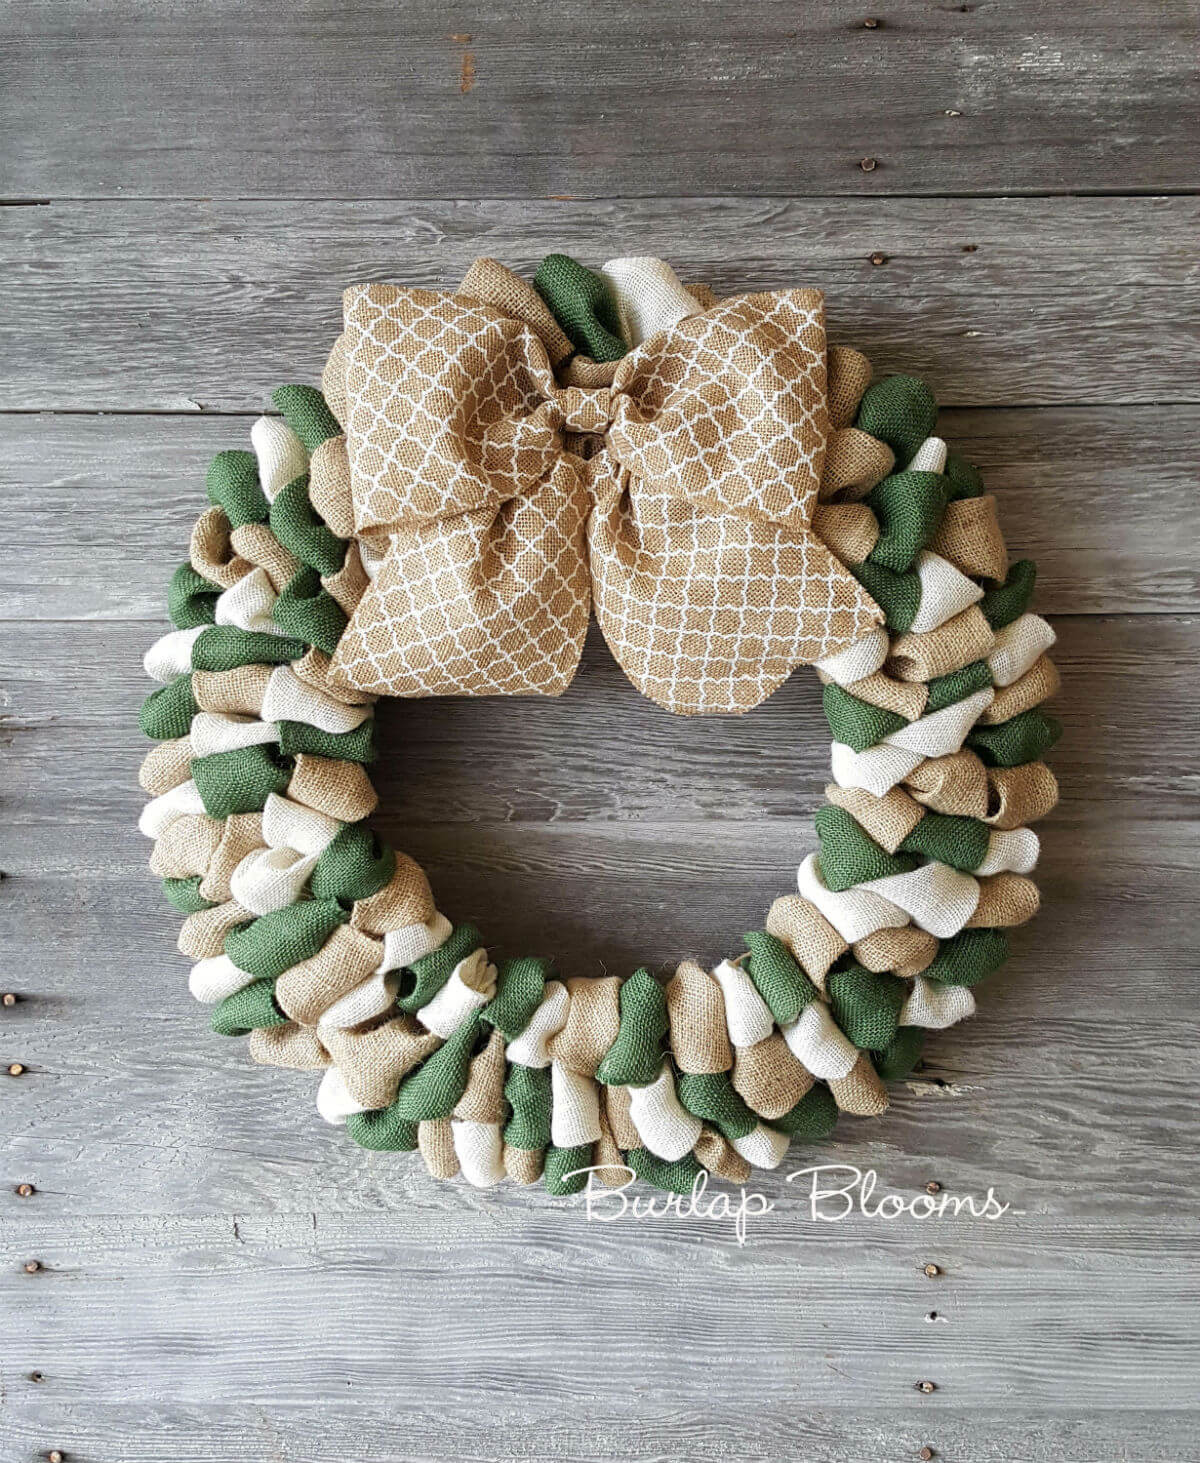 Cute Burlap Wreath with a Big Bow